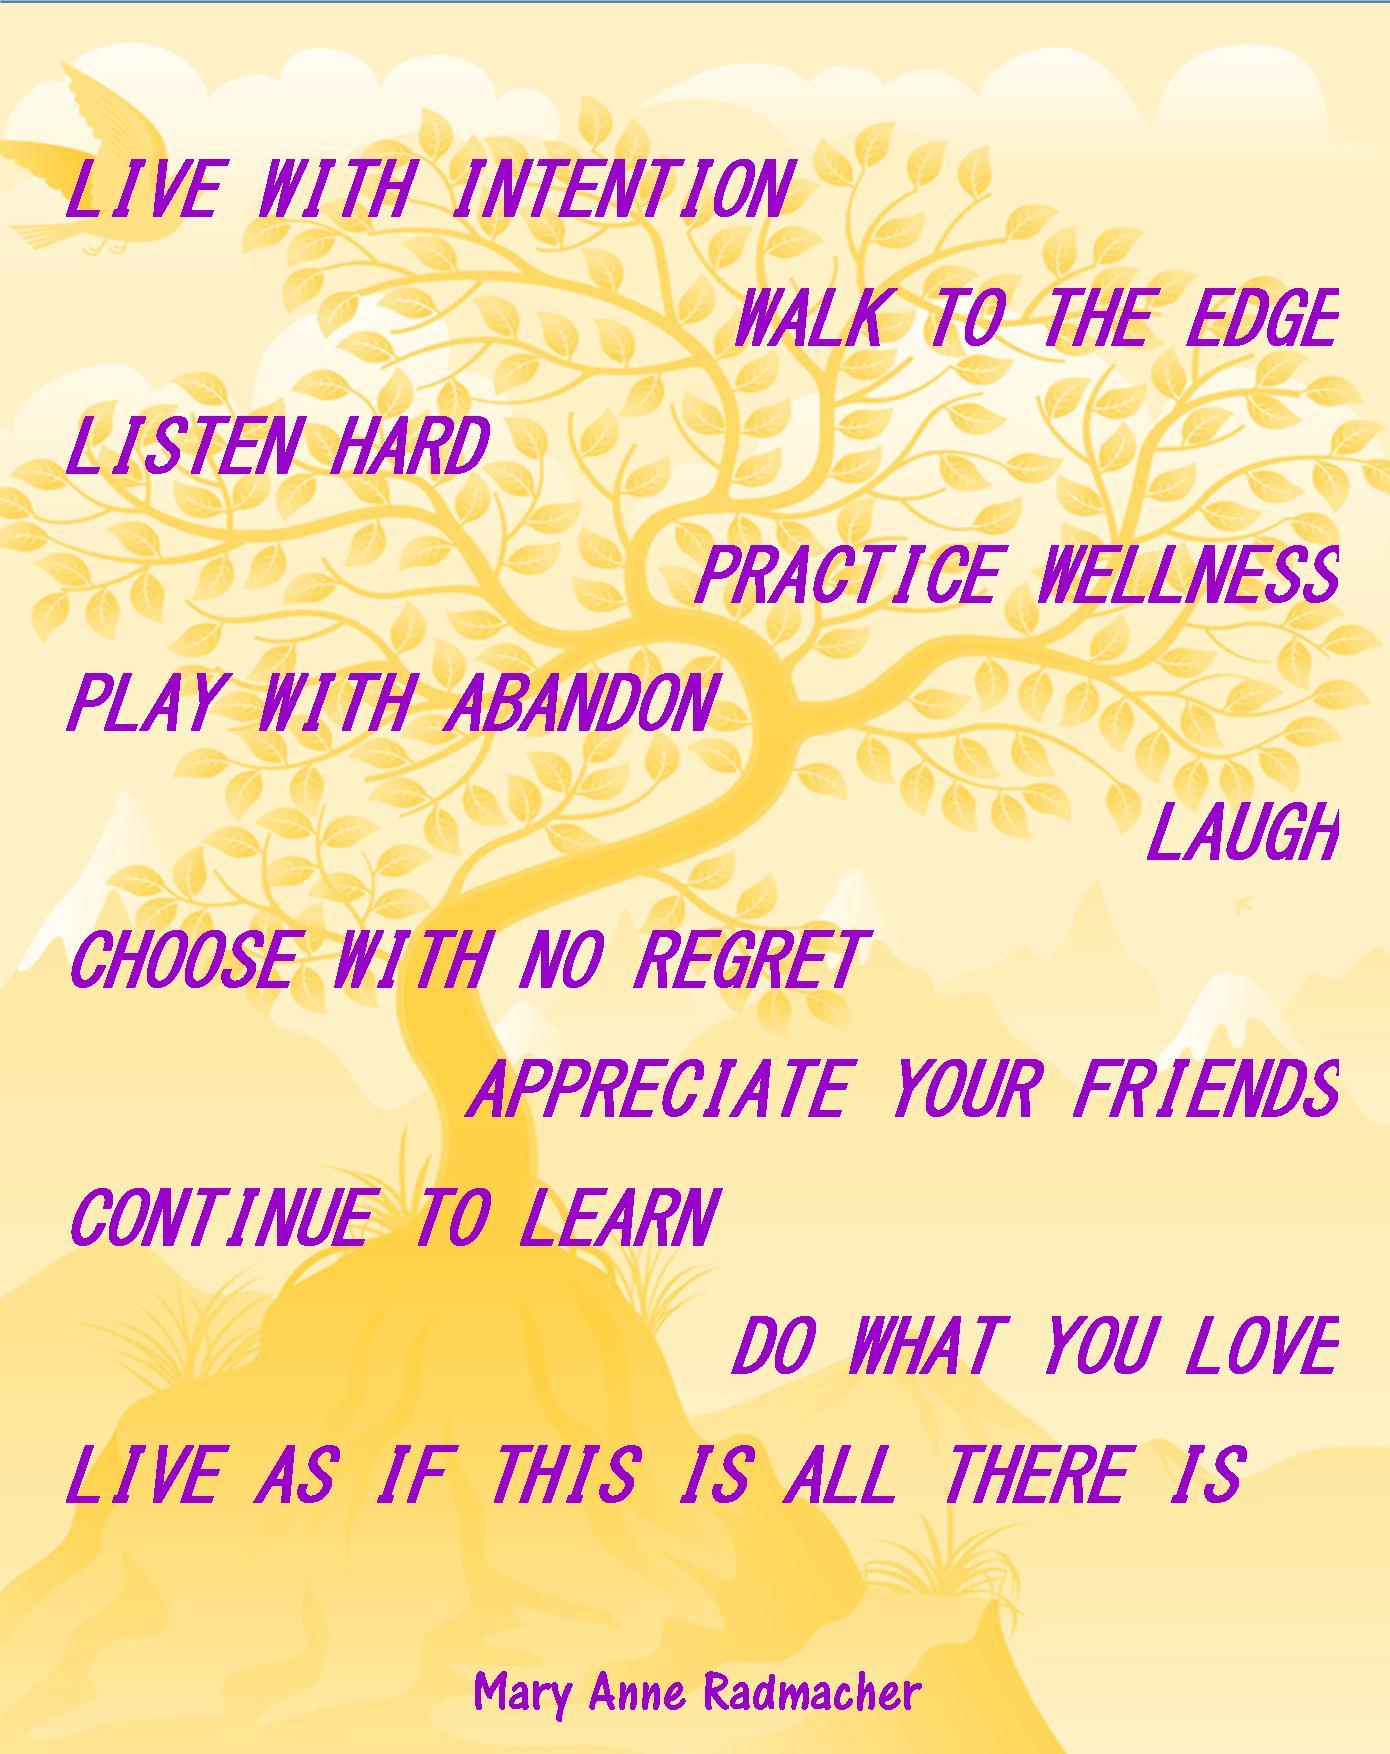 Live with intention quote gaye crispins blog advertisements altavistaventures Images